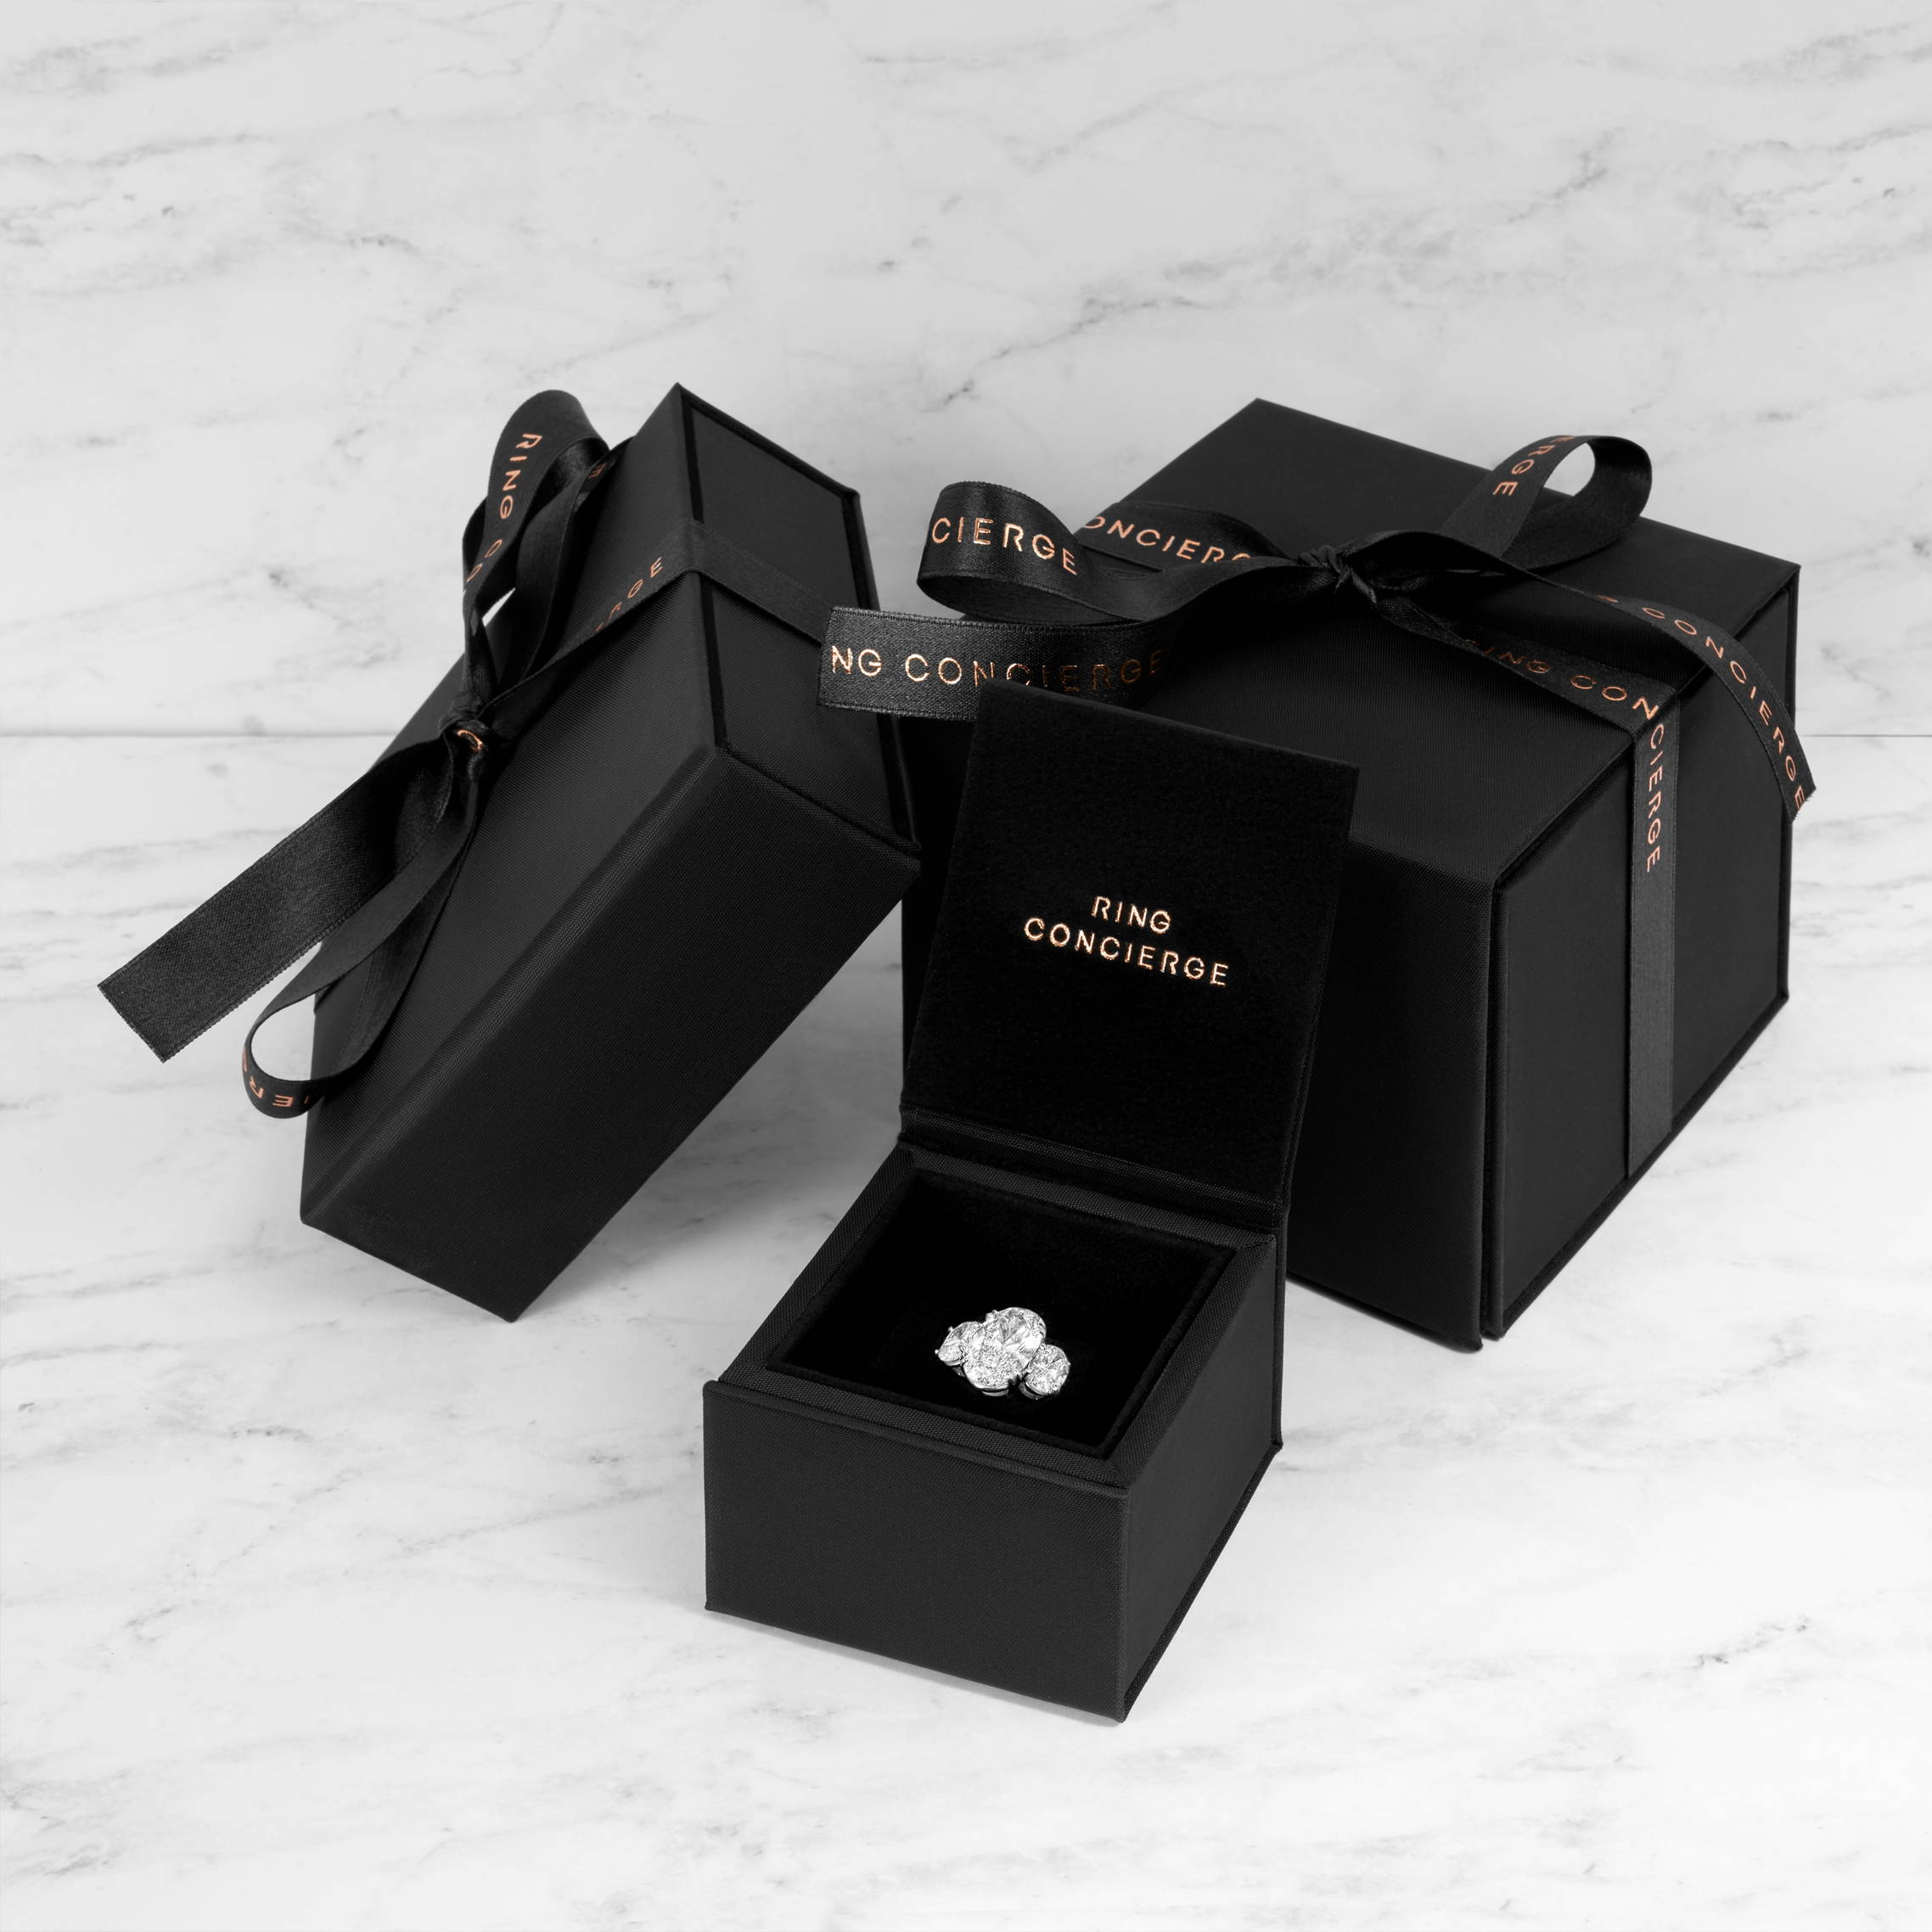 Ring Concierge gift boxes